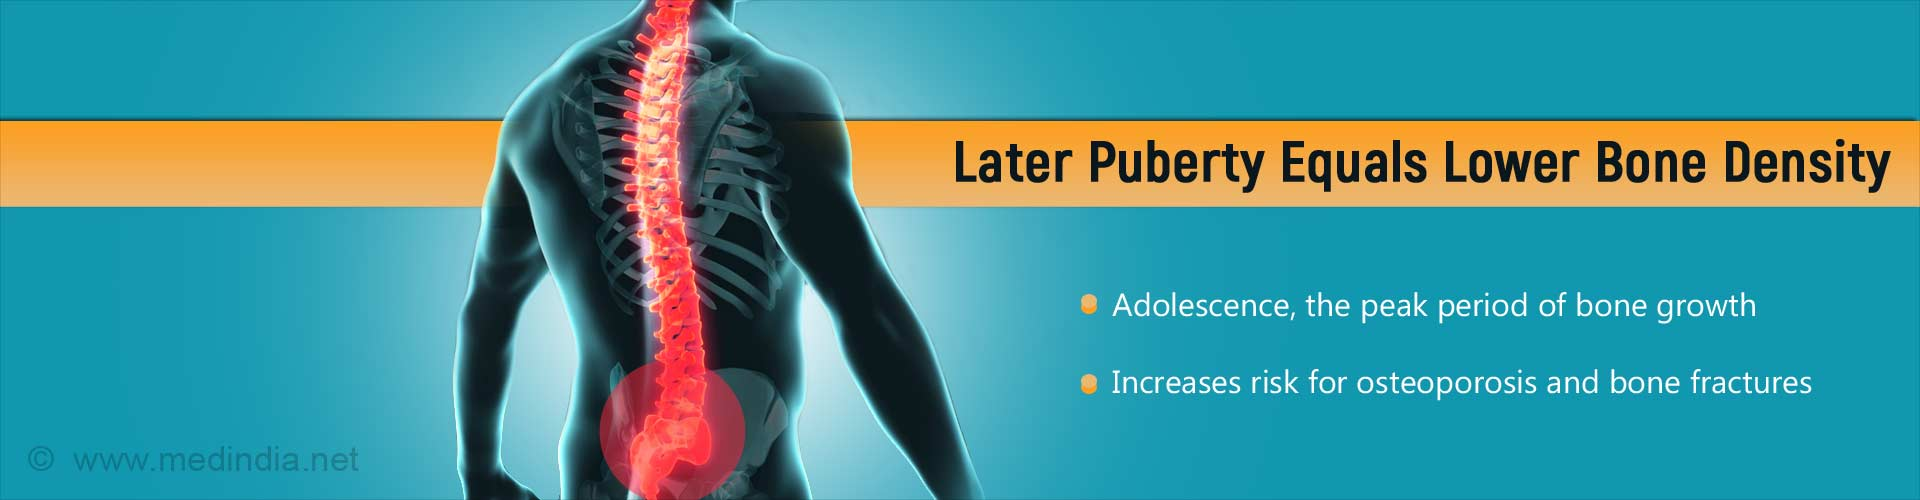 Delayed Puberty Reduces Bone Density And Increases Risk Of Osteoporosis